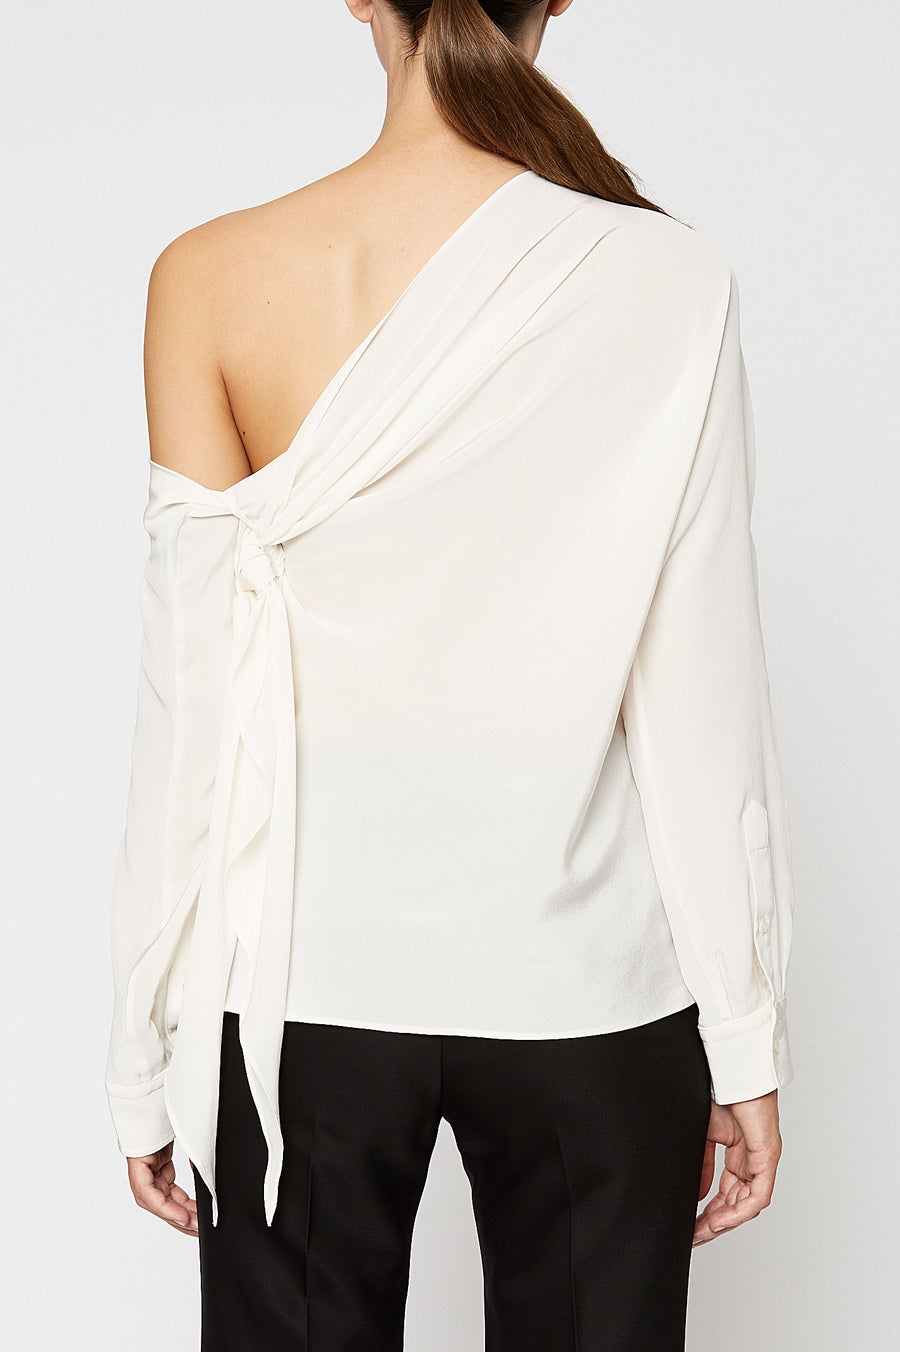 CDC CRAVAT BLOUSE, WHITE color